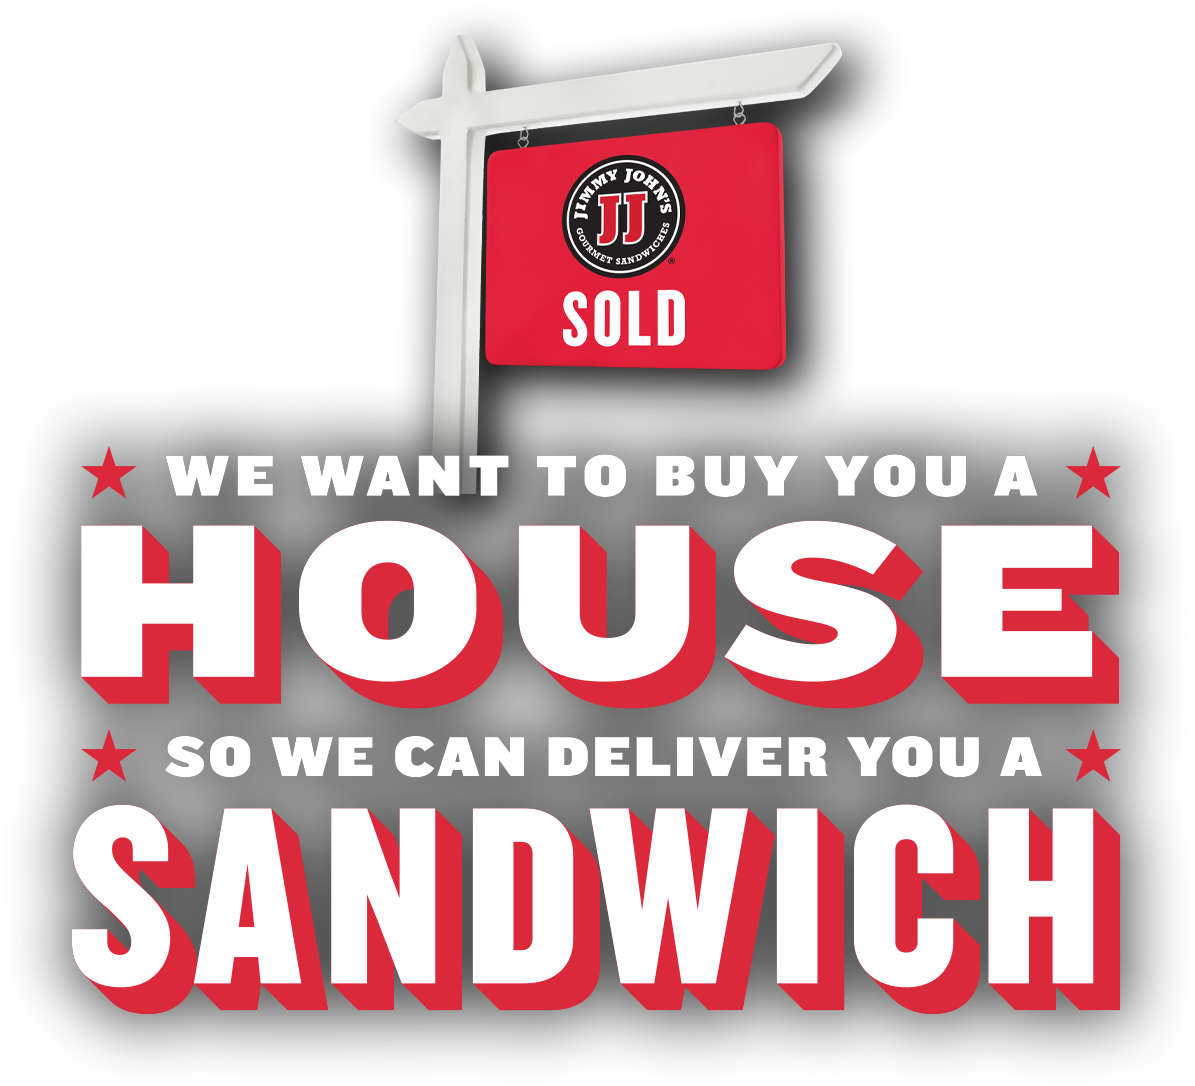 Jimmy John\'s Is Buying Someone a House.